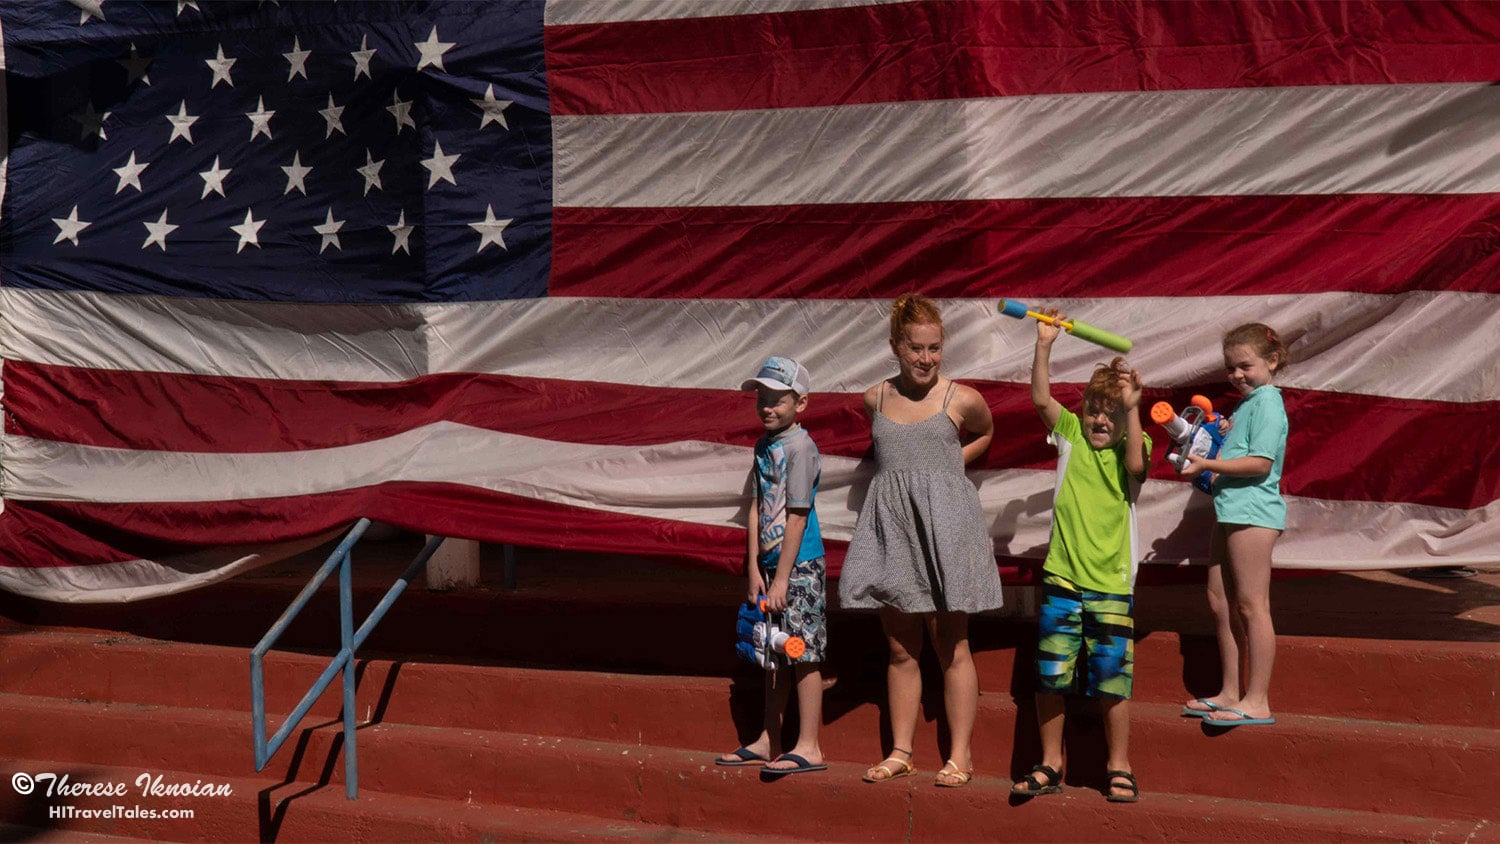 Flags hang all around the town, making for a great photo opp for all.